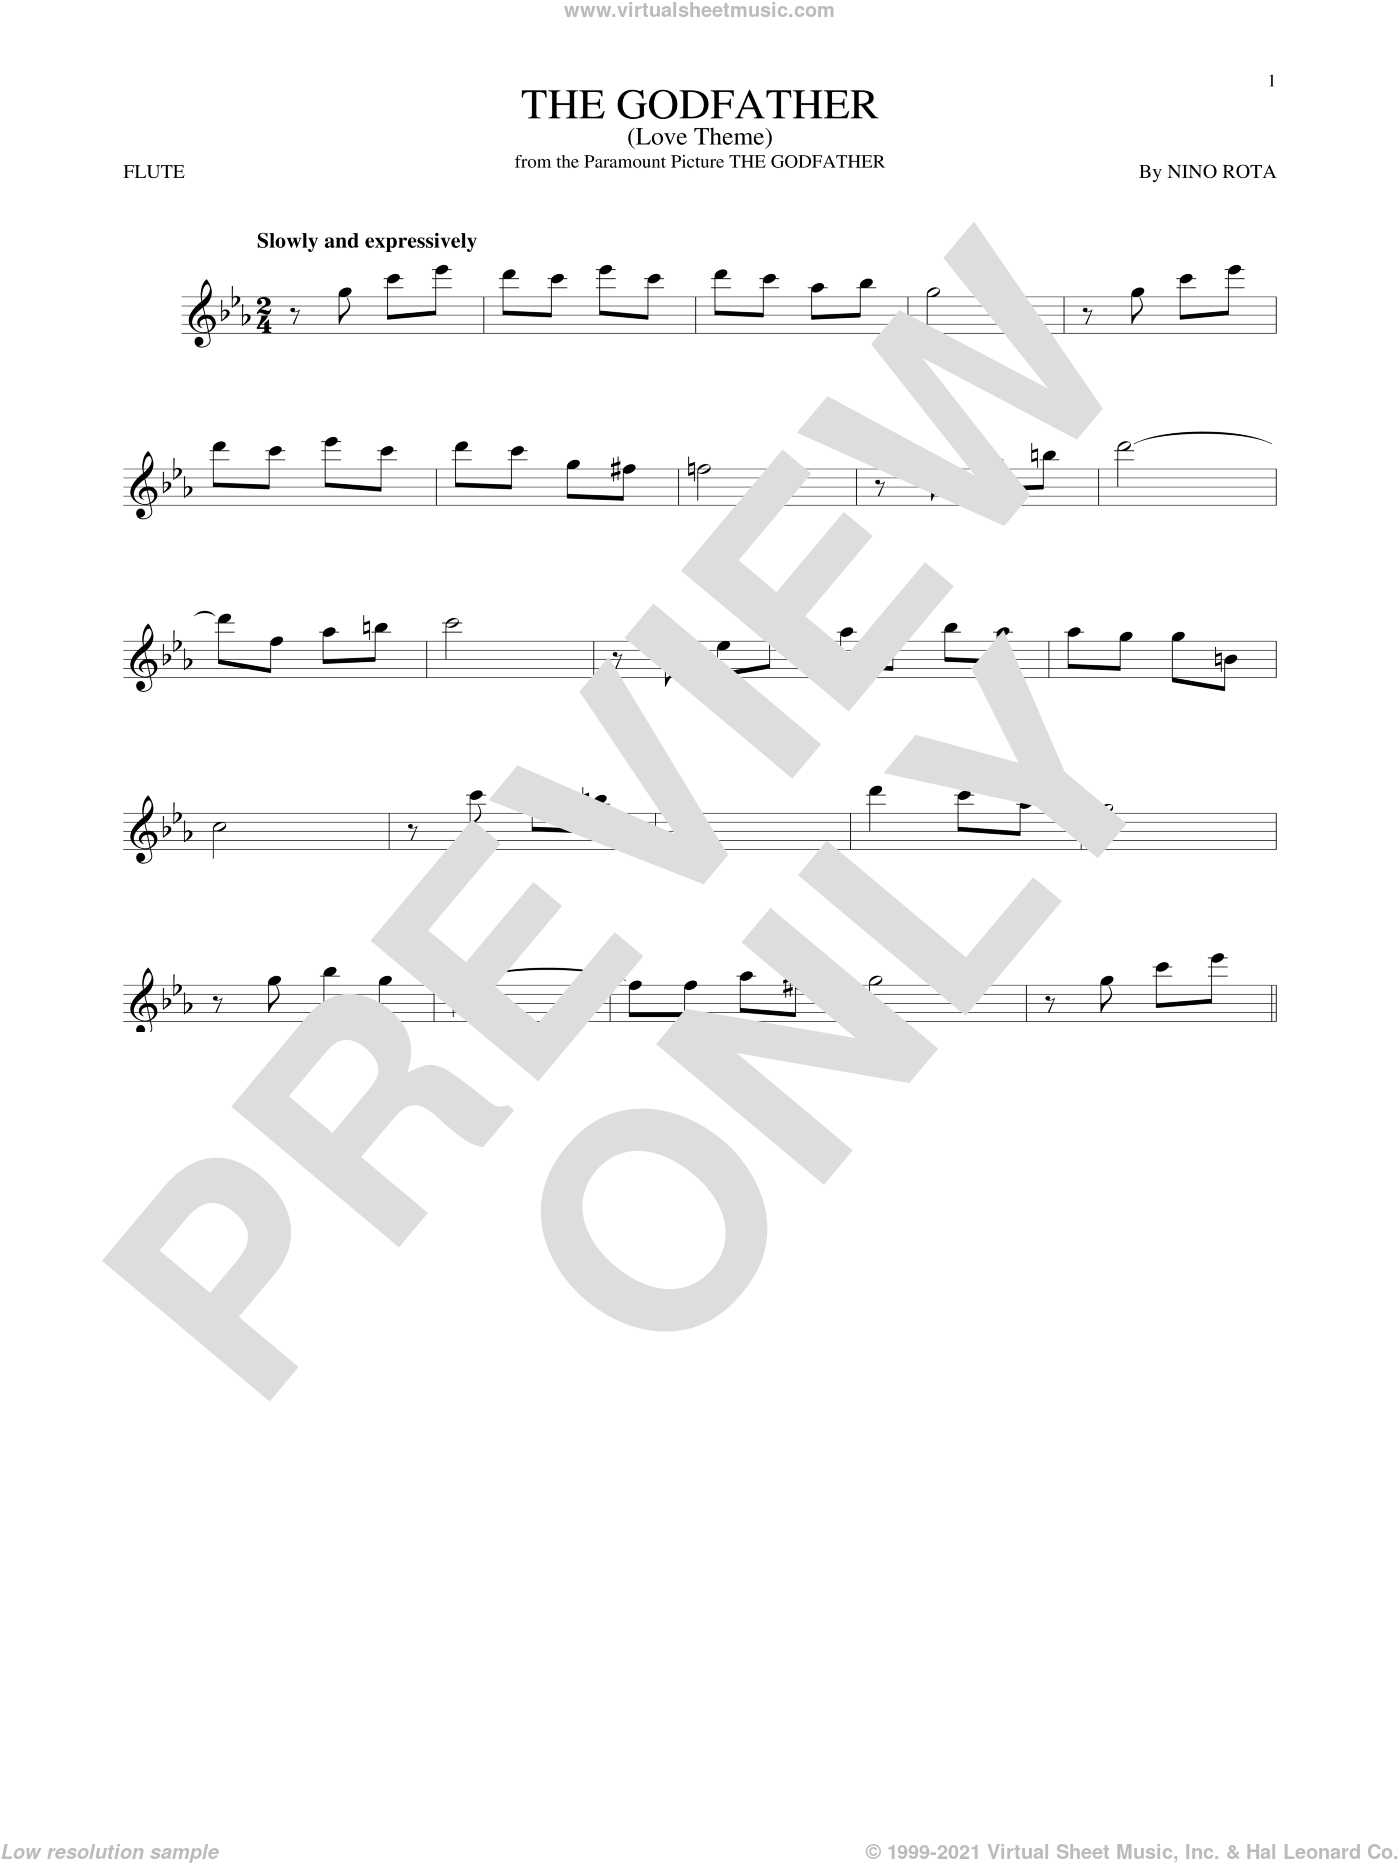 The Godfather (Love Theme) sheet music for flute solo by Nino Rota, intermediate skill level